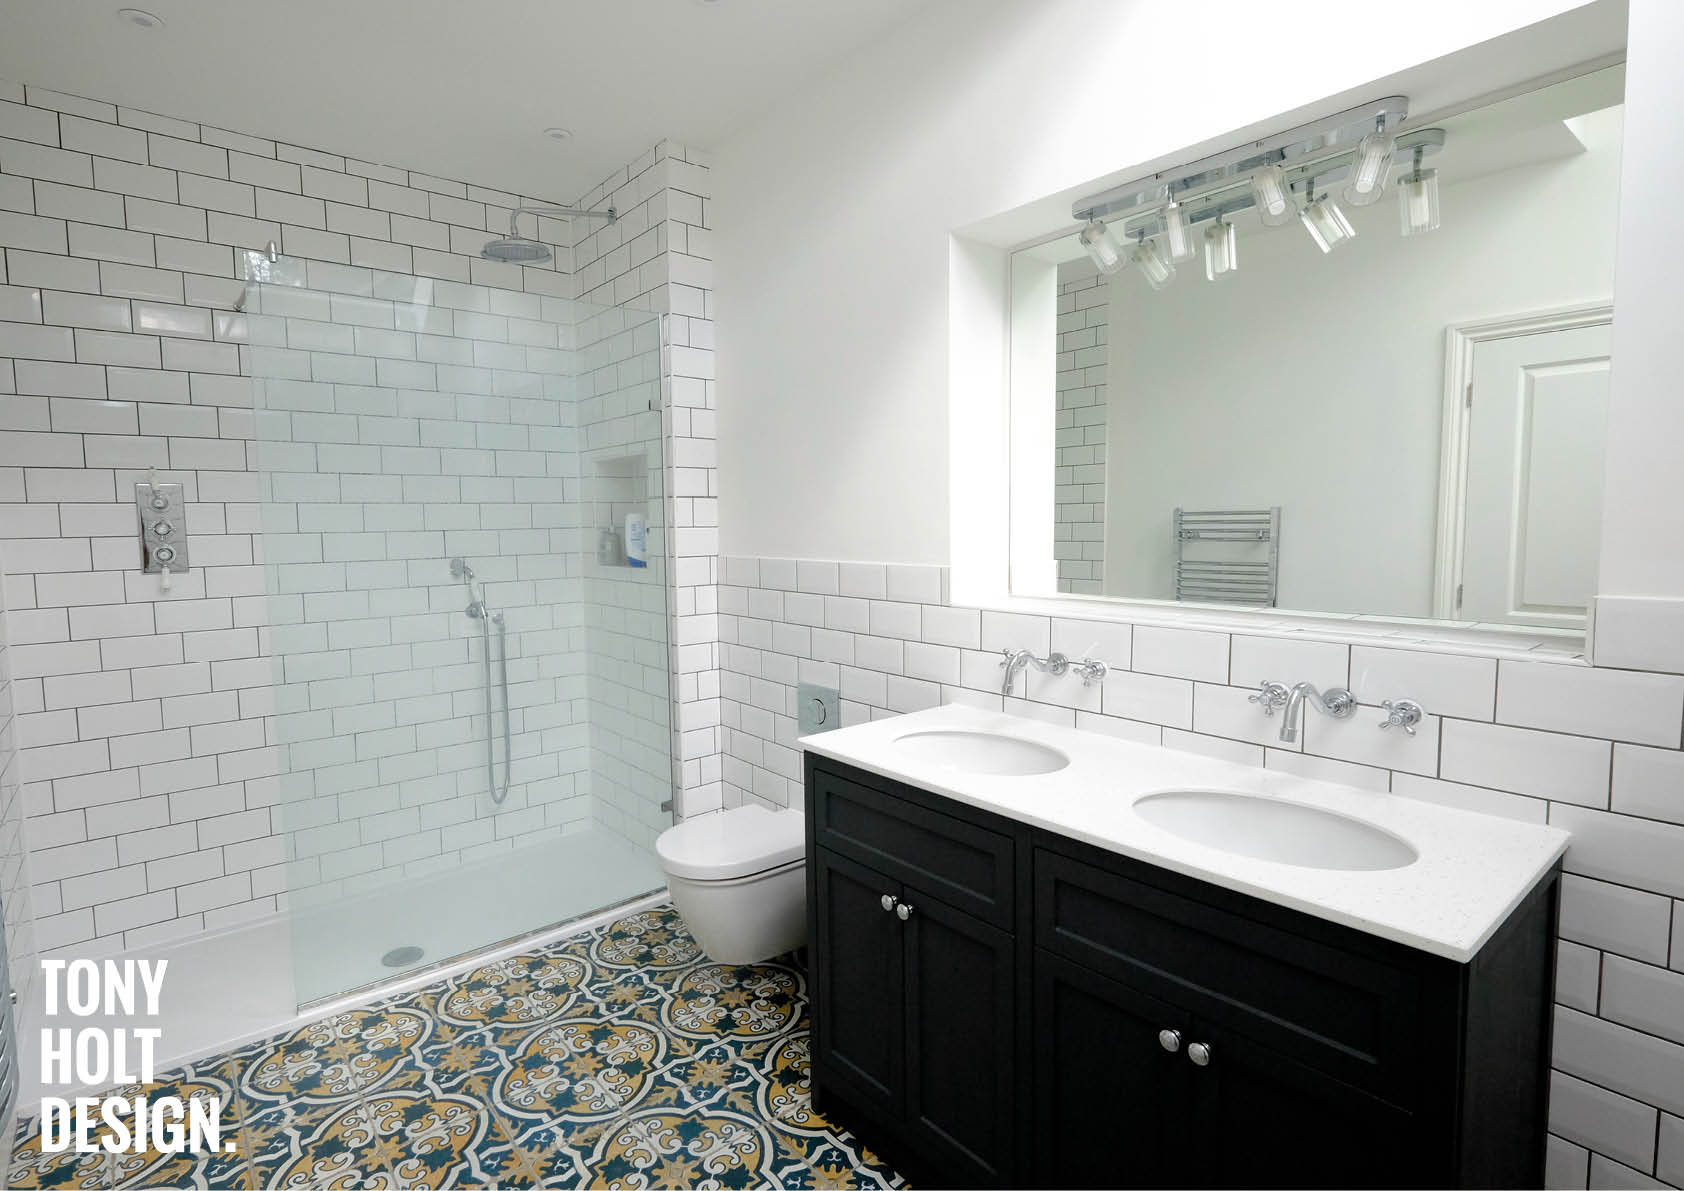 Tony Holt Design_South Drive_Remodel_Bathroom_Web.jpg